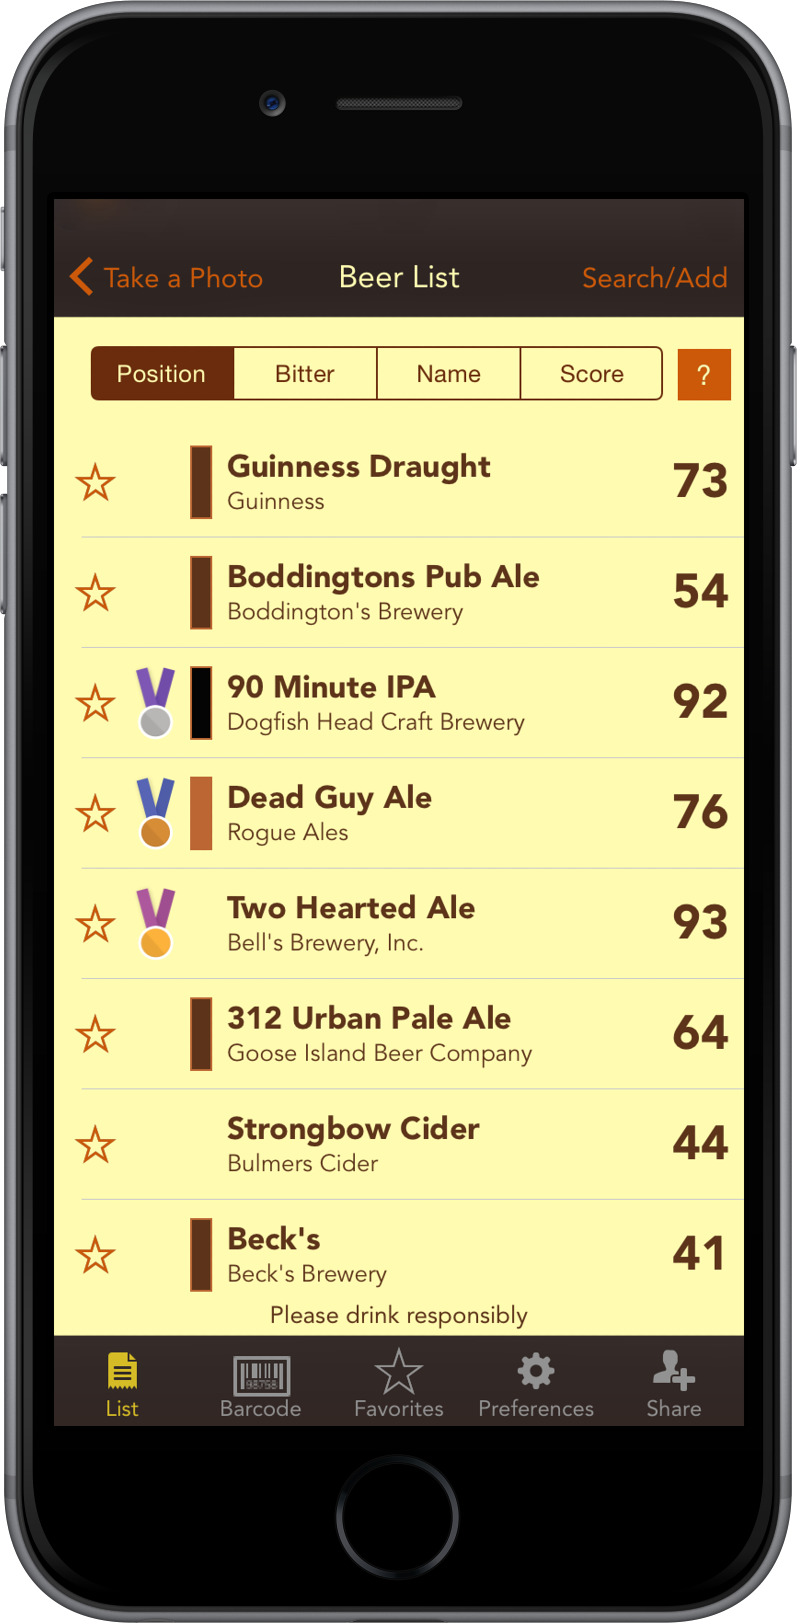 Picky Pint - A New Craft Beer App to Help Navigate Beer Menus with